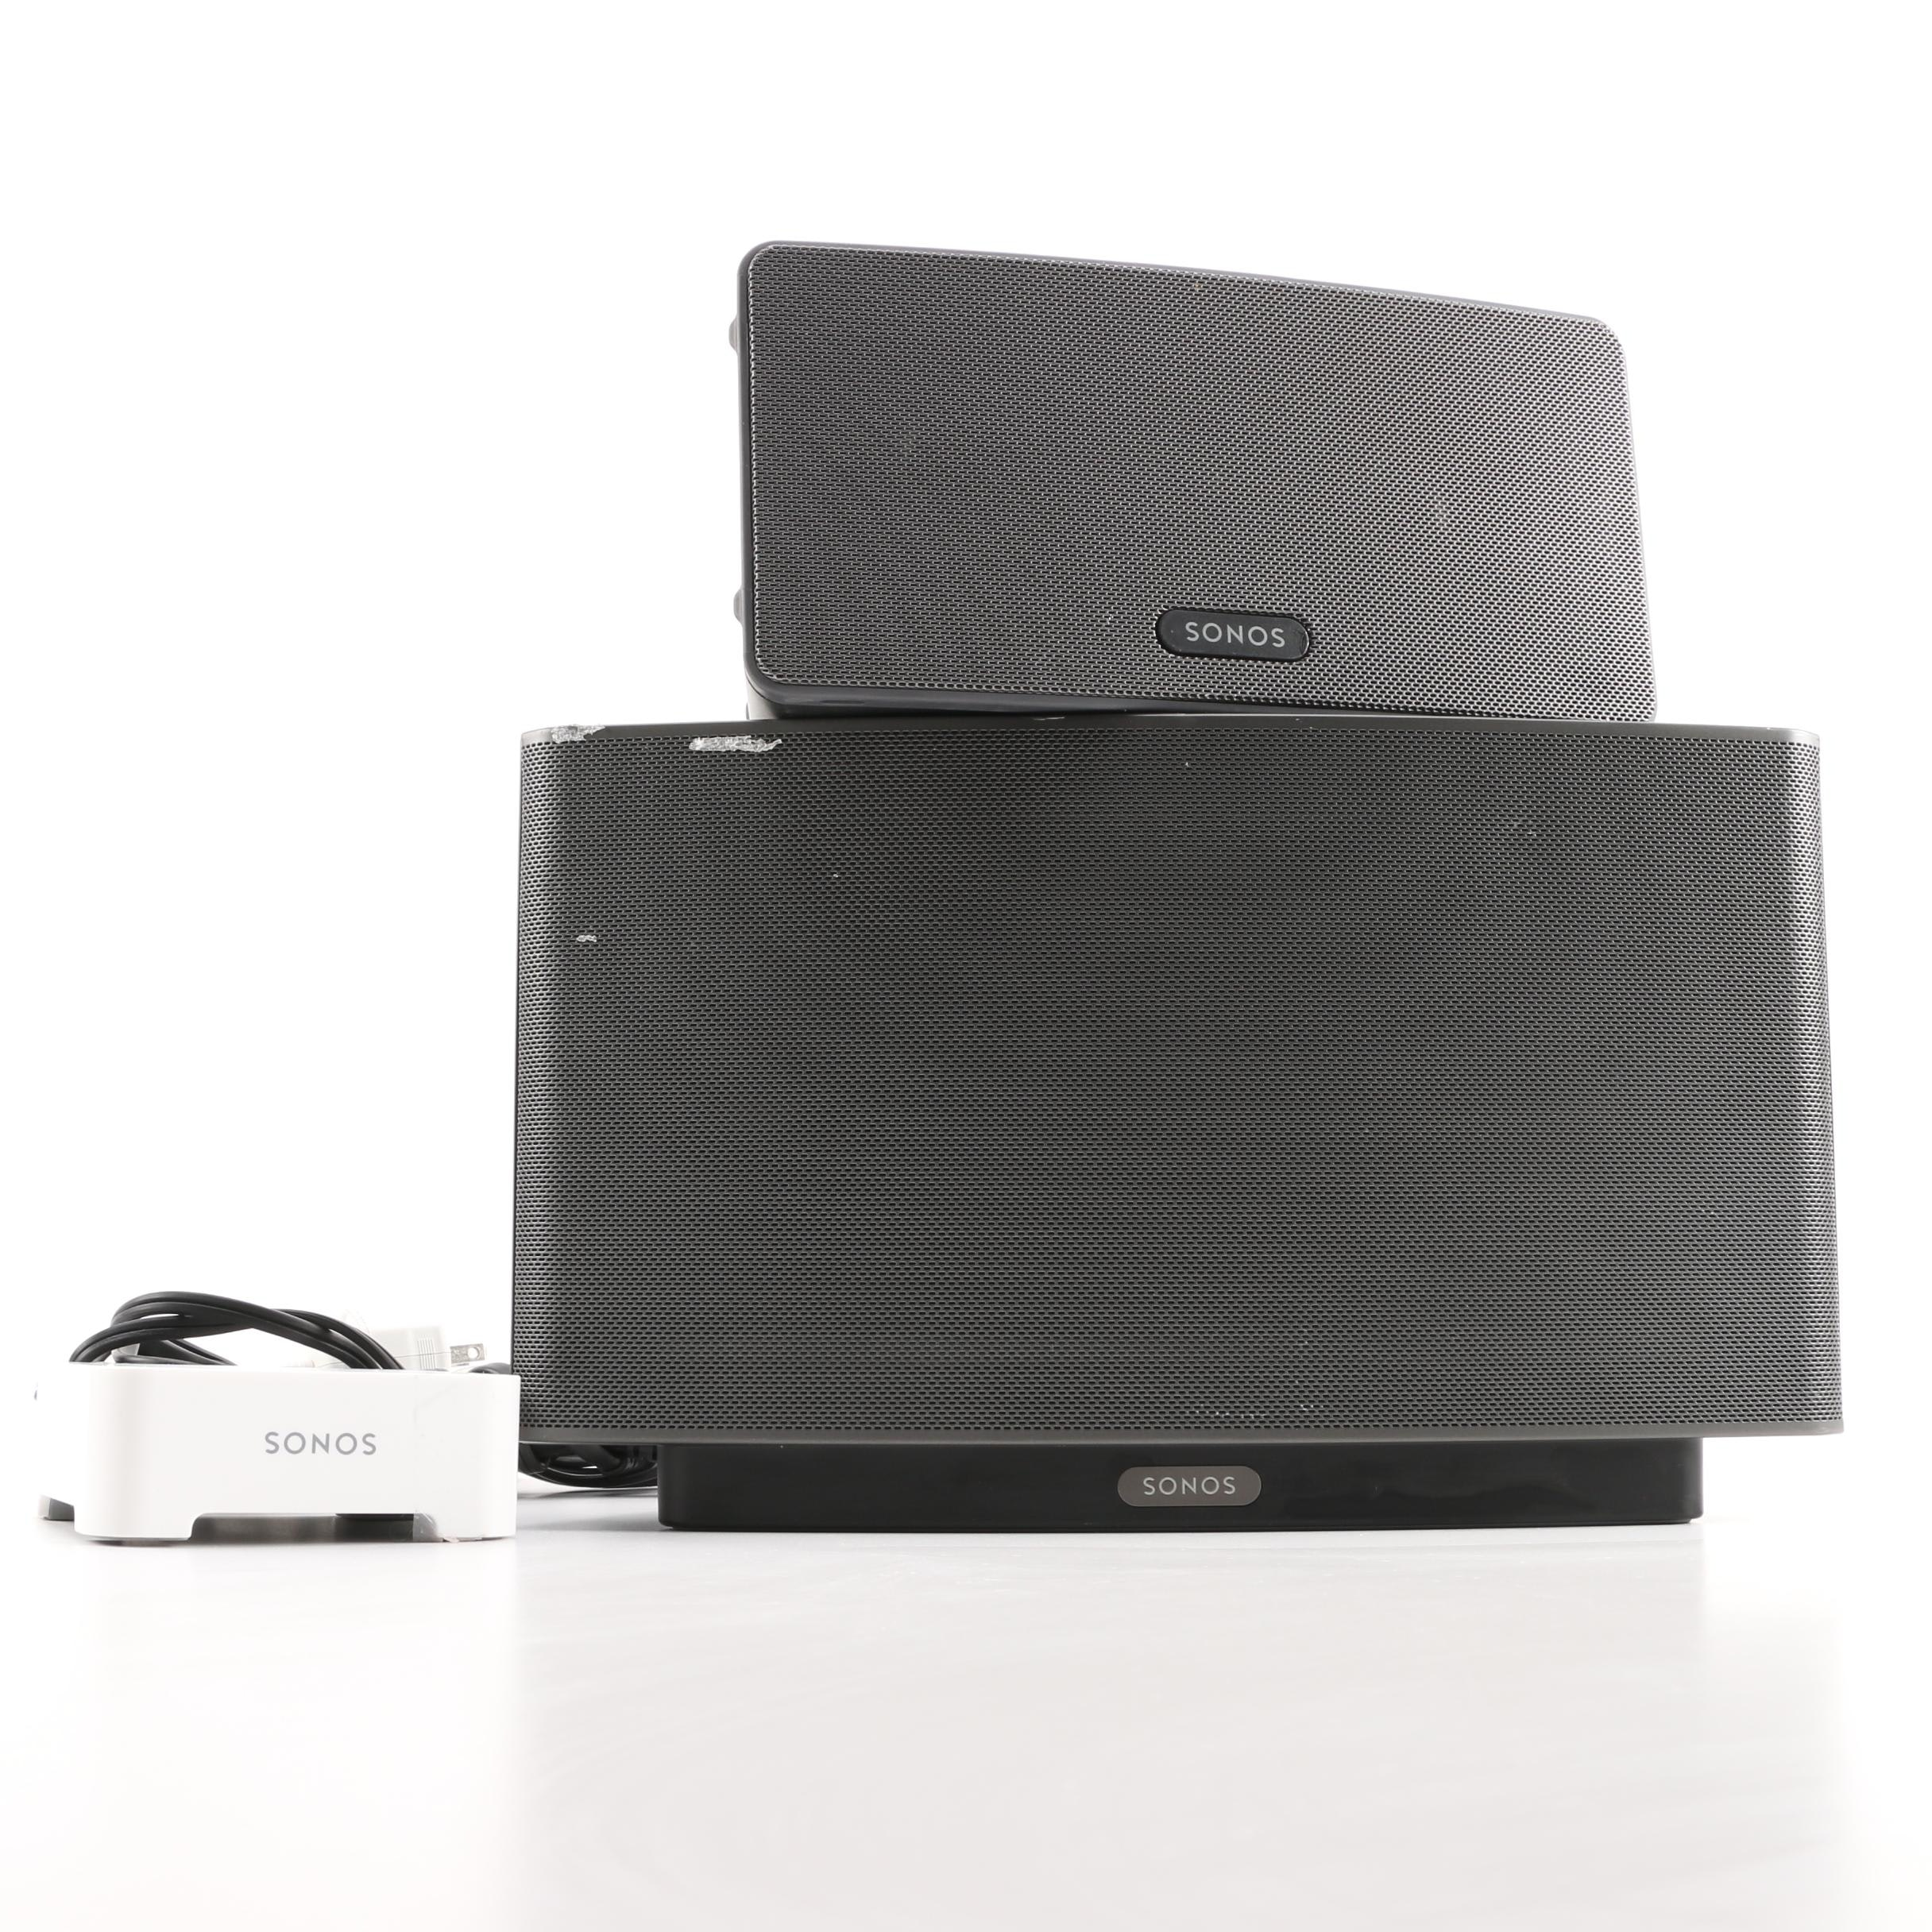 Sonos Play:3 and Play: 5 Wireless Smart Speakers and Wireless Bridge